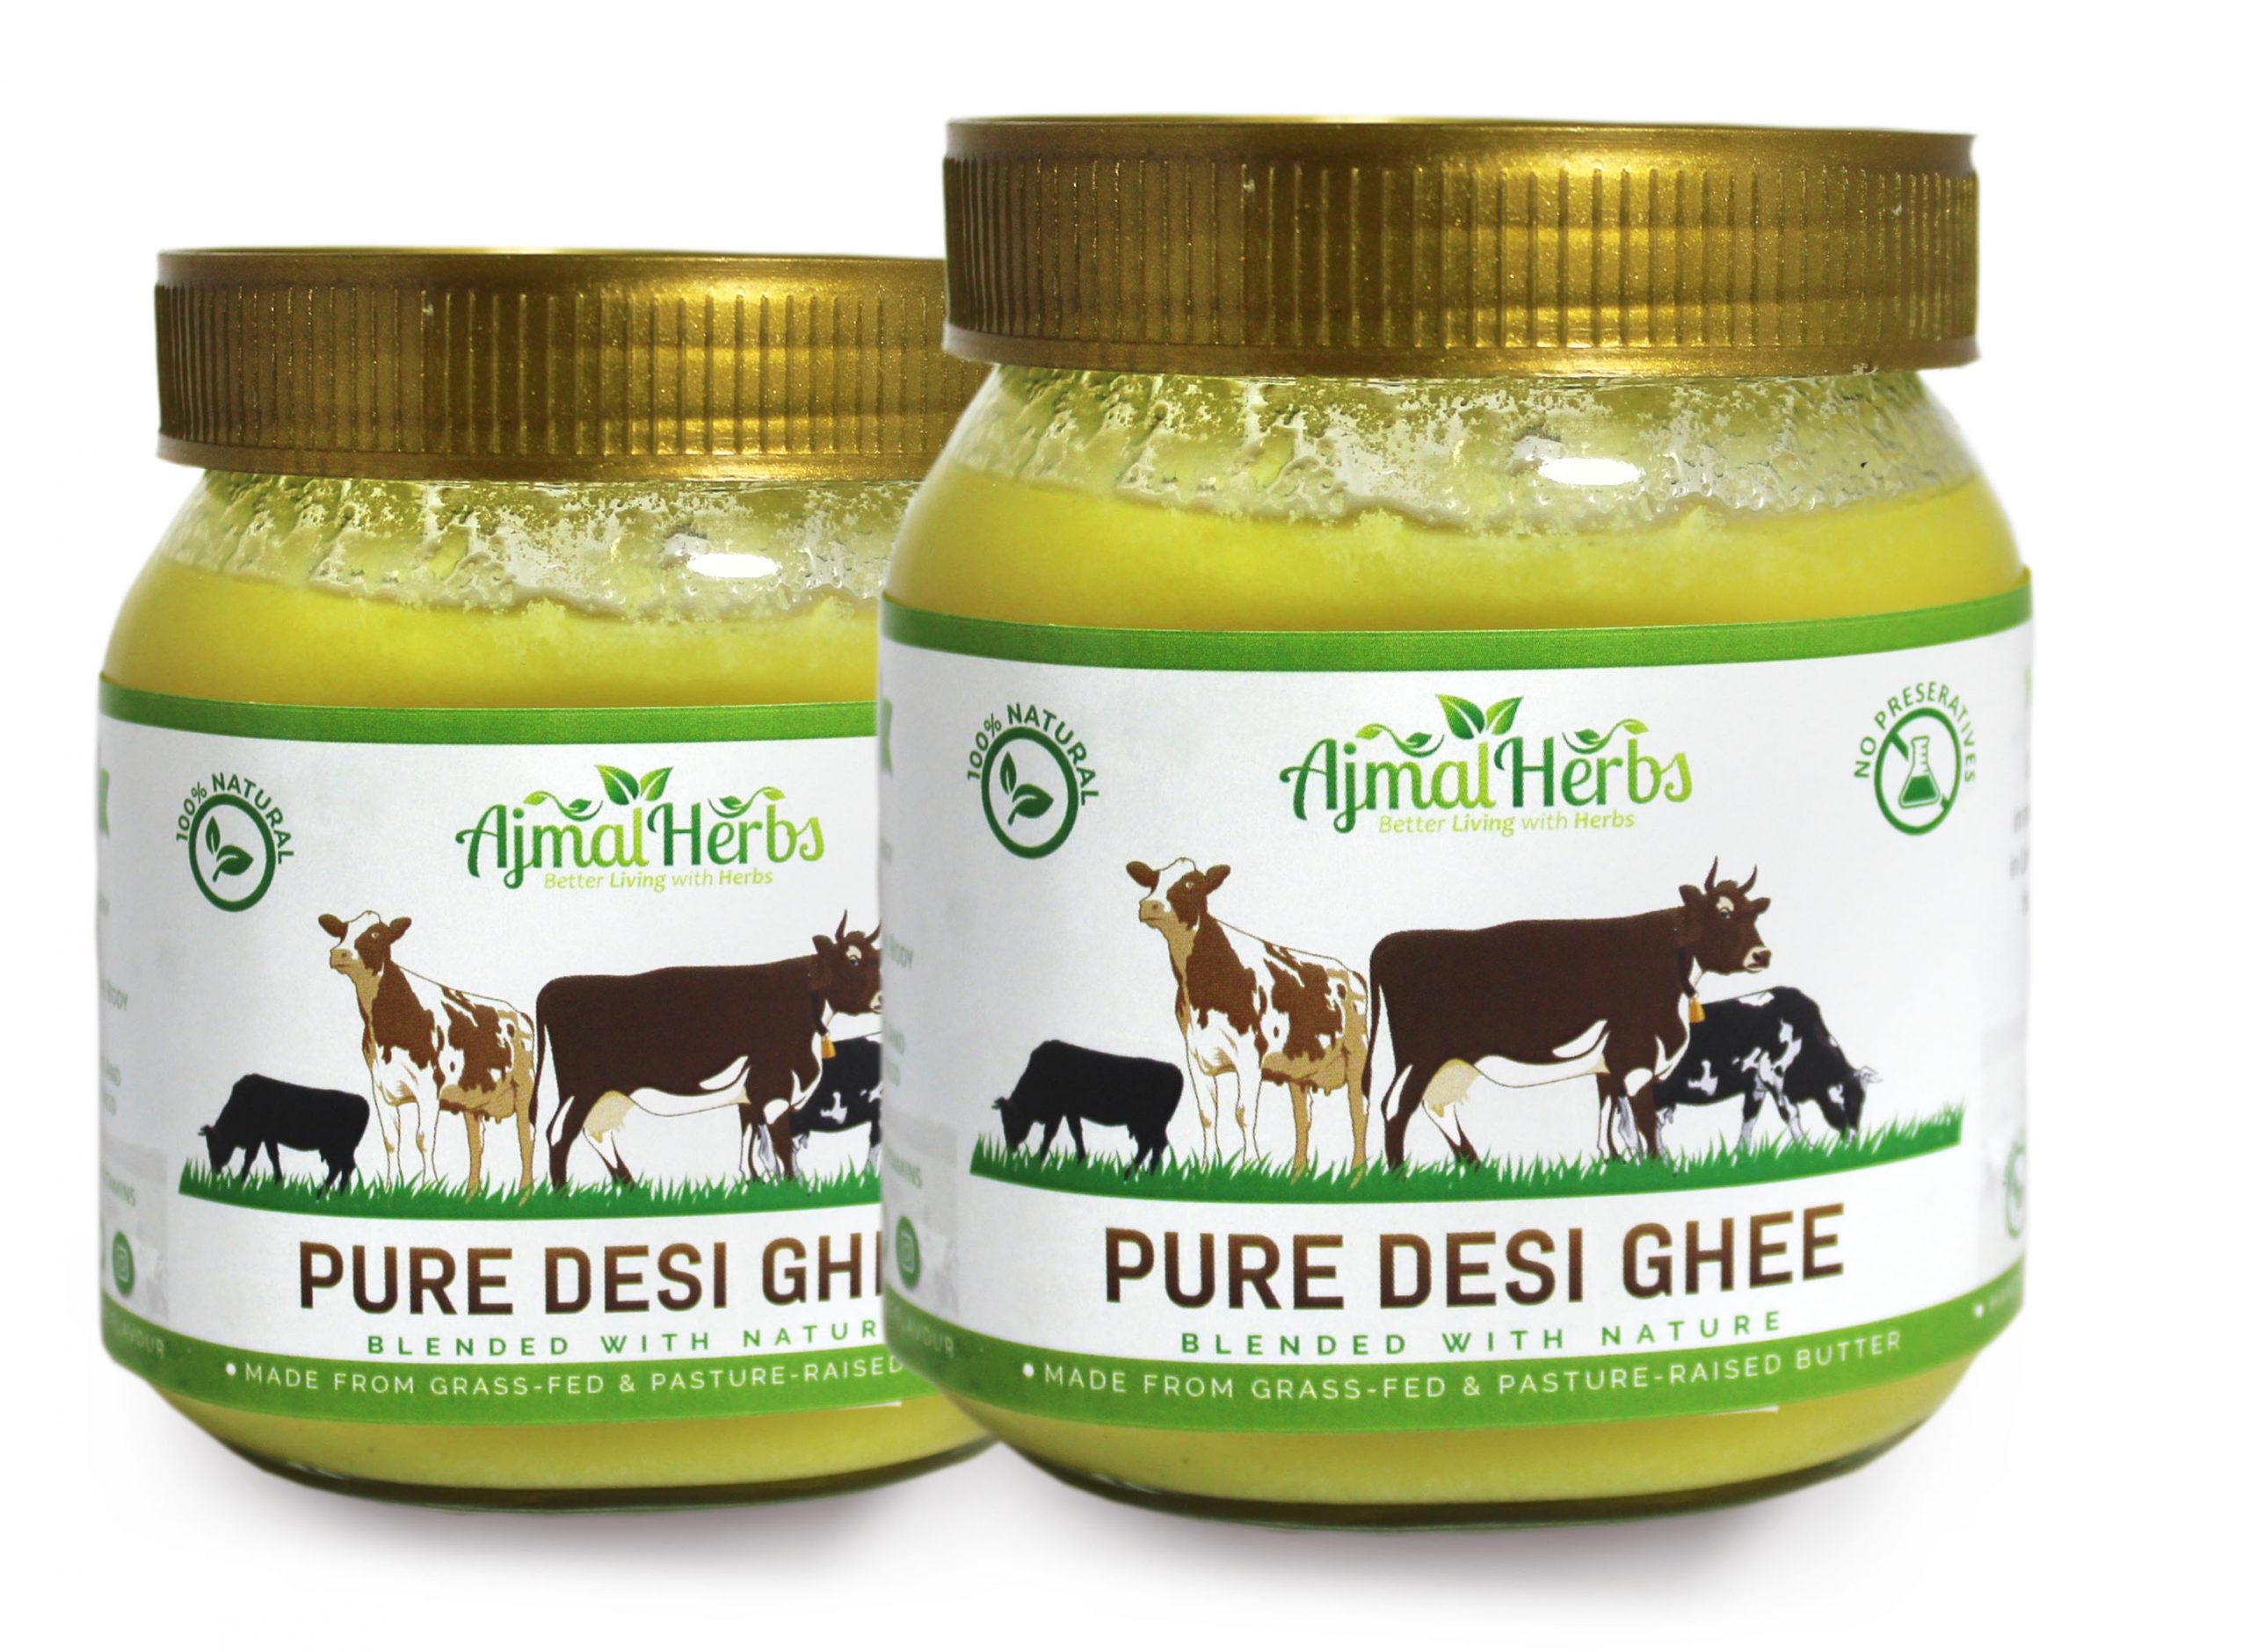 Ajmal Herbs product